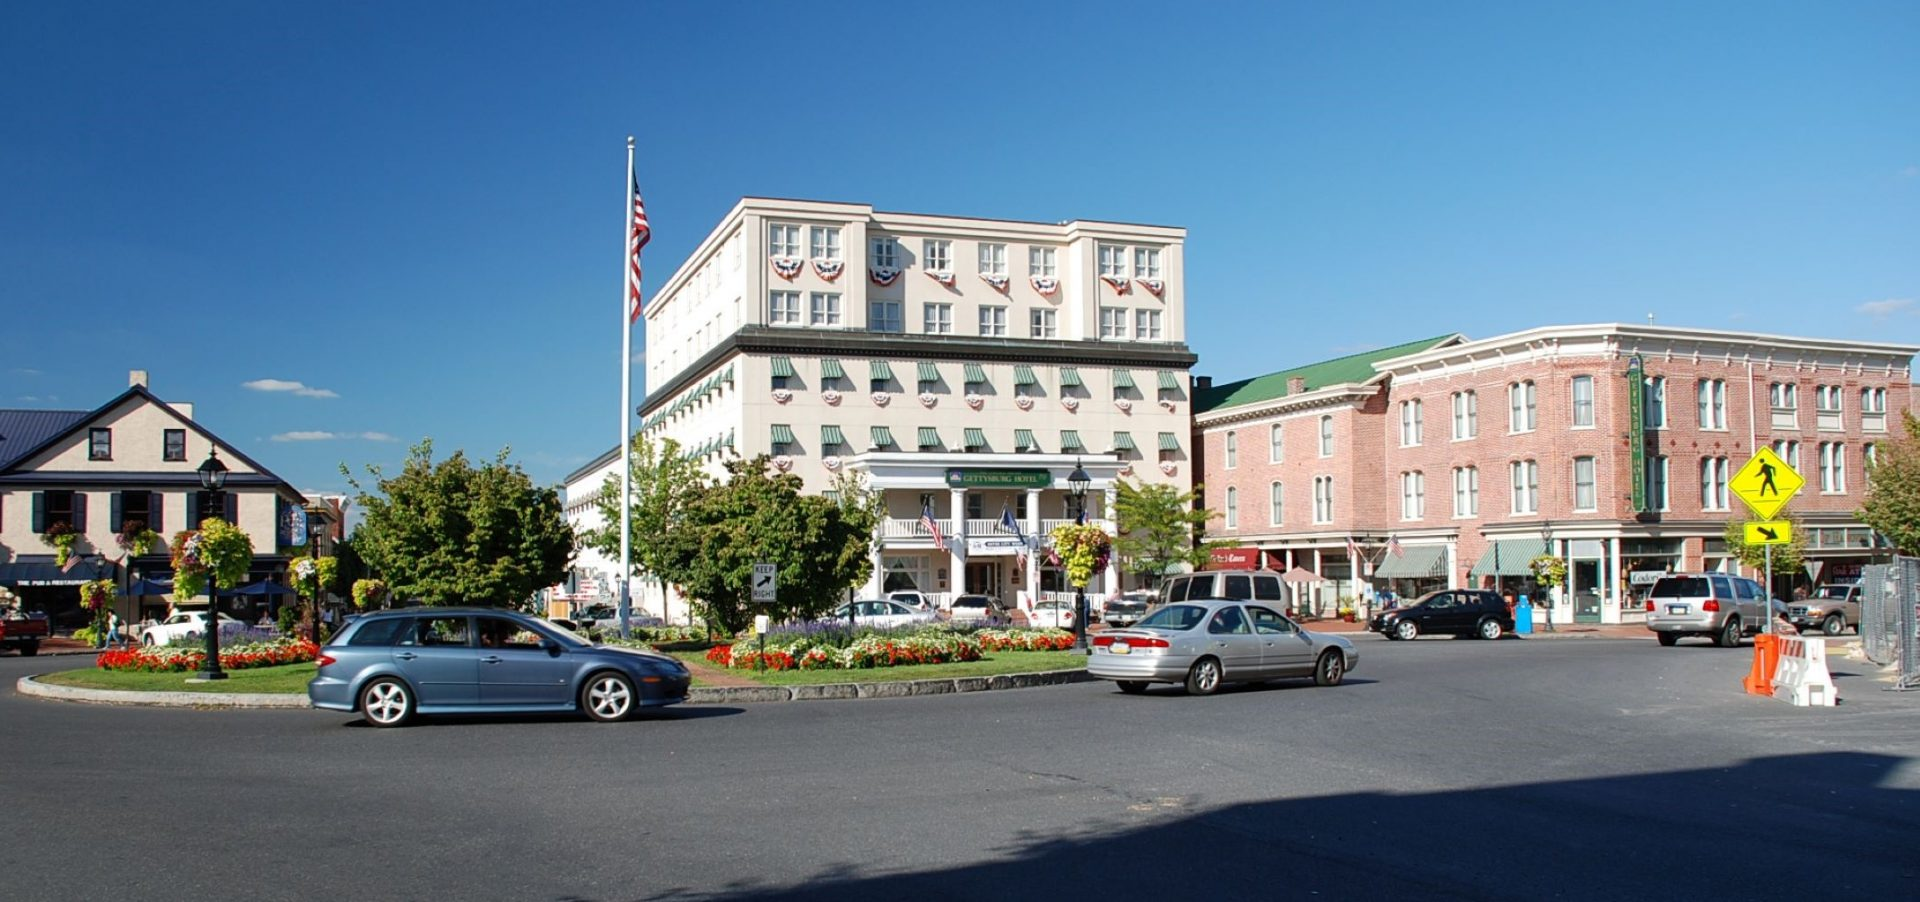 Traffic moves through the square in downtown Gettysburg.